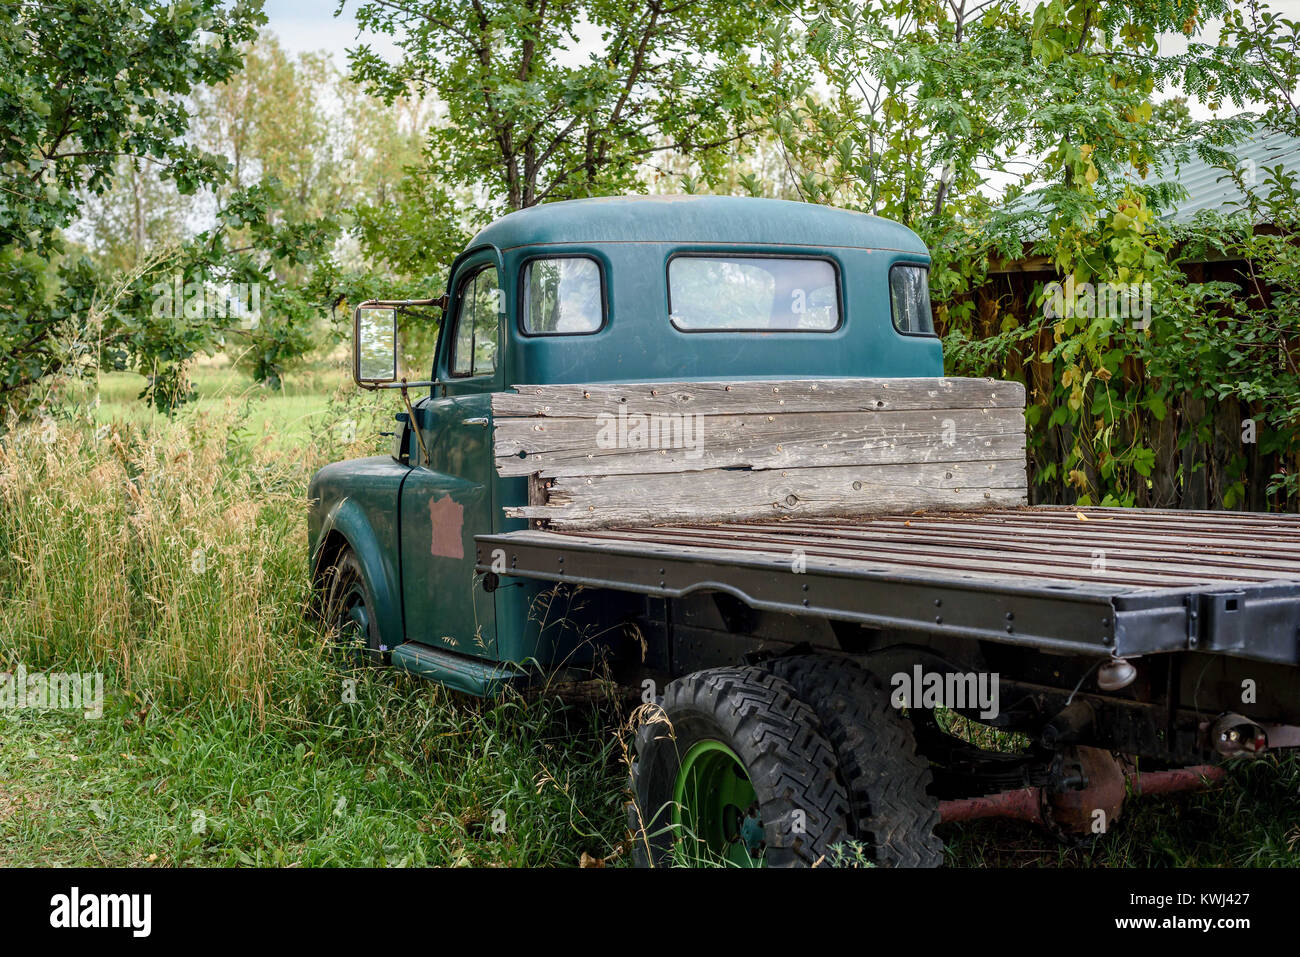 1940 Chevy Truck >> Truck Classic 1940s Stock Photos & Truck Classic 1940s Stock Images - Alamy